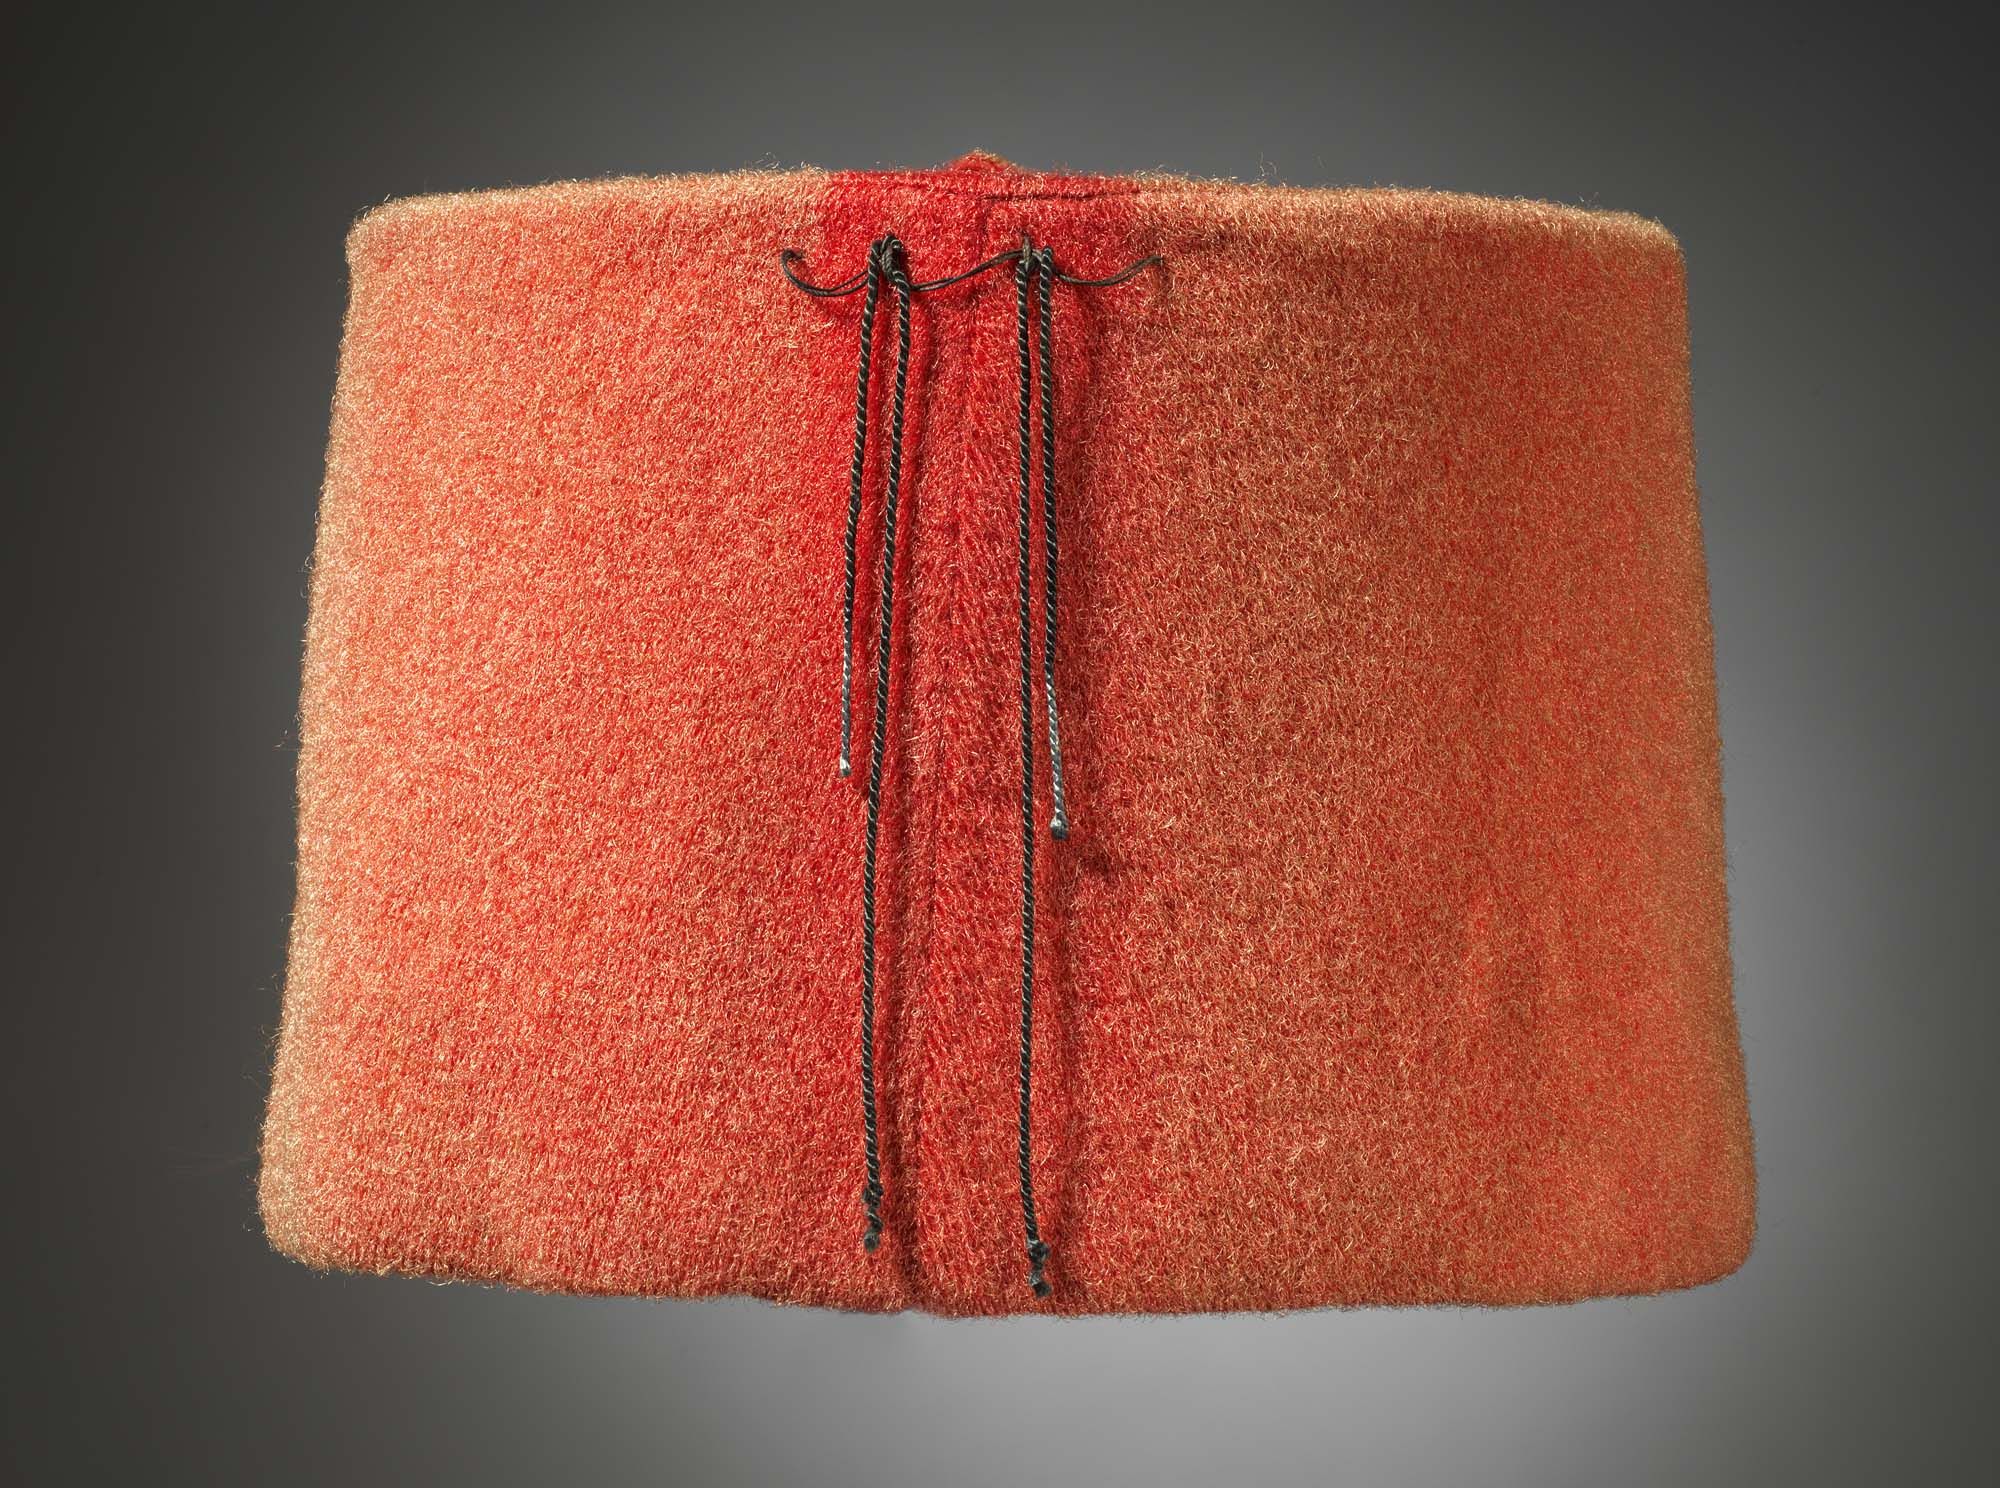 a photo of a red fez with a couple of tassels